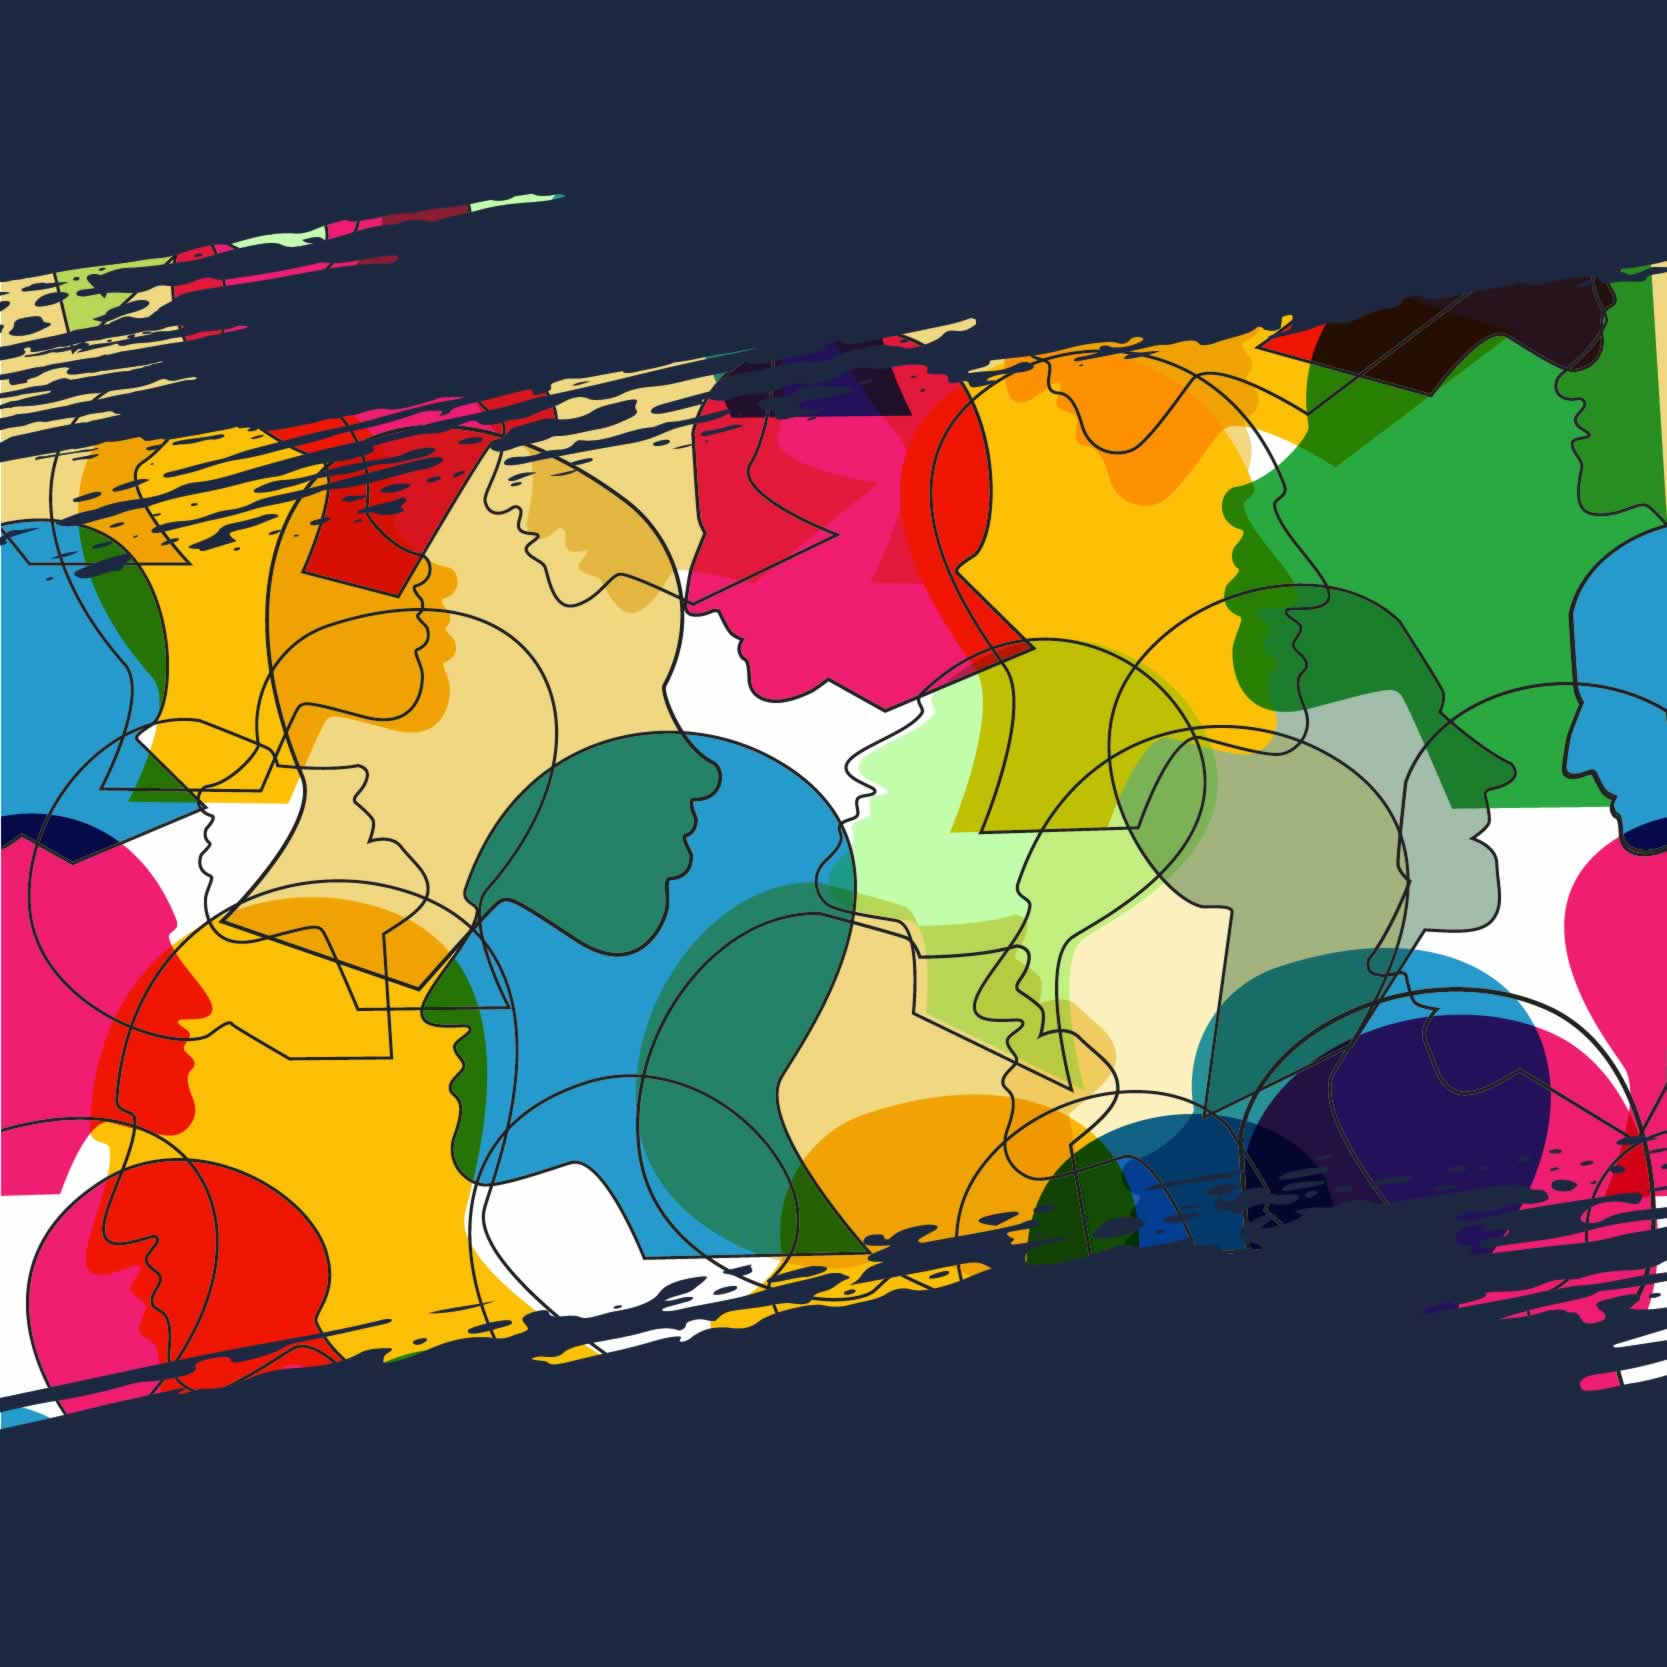 Region 3 equity conference logo/image multicoloured outlines of heads